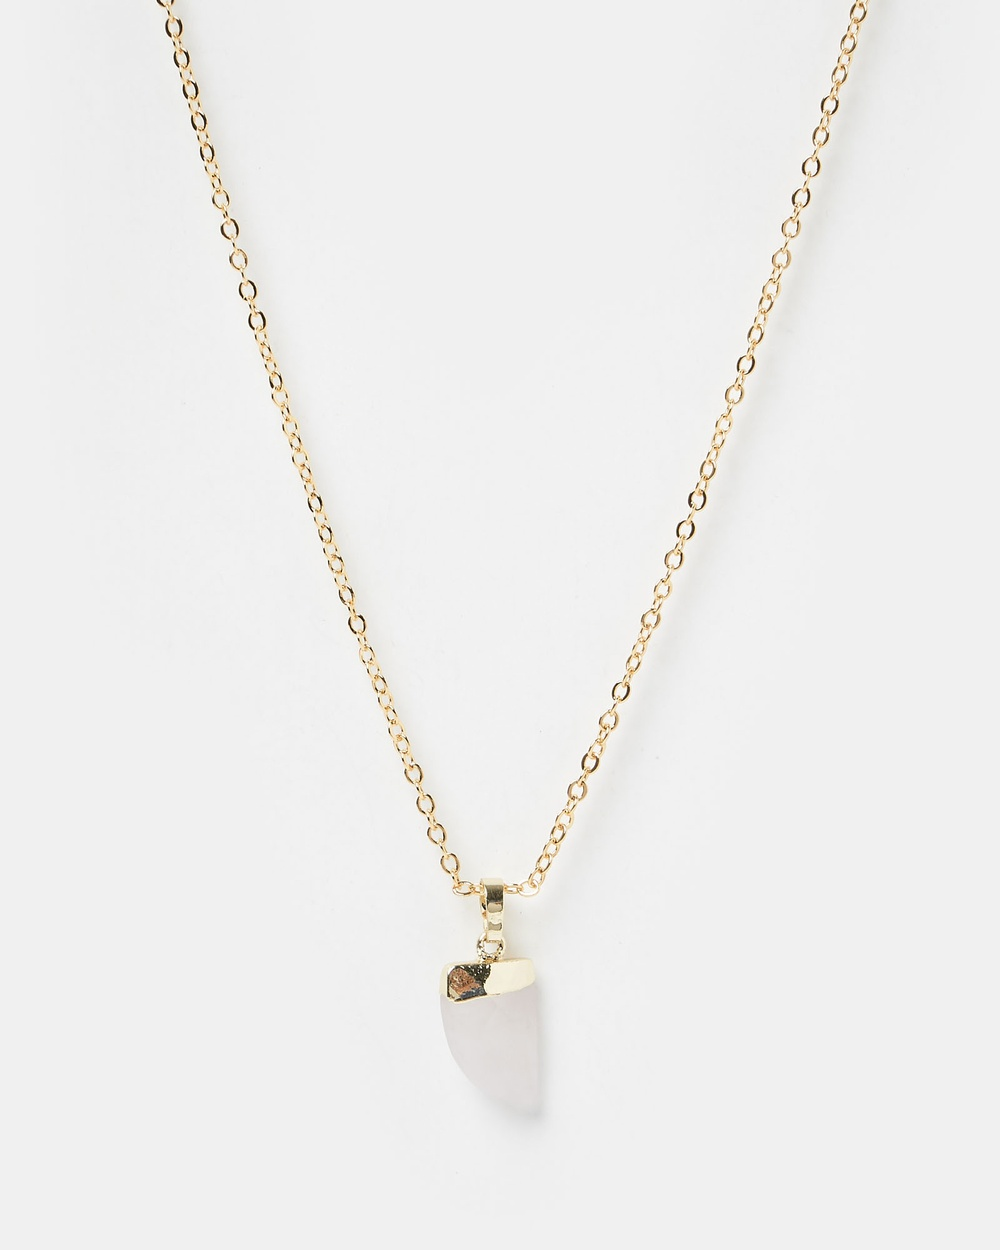 Miz Casa and Co Stone Charm Necklace Jewellery Gold Pink